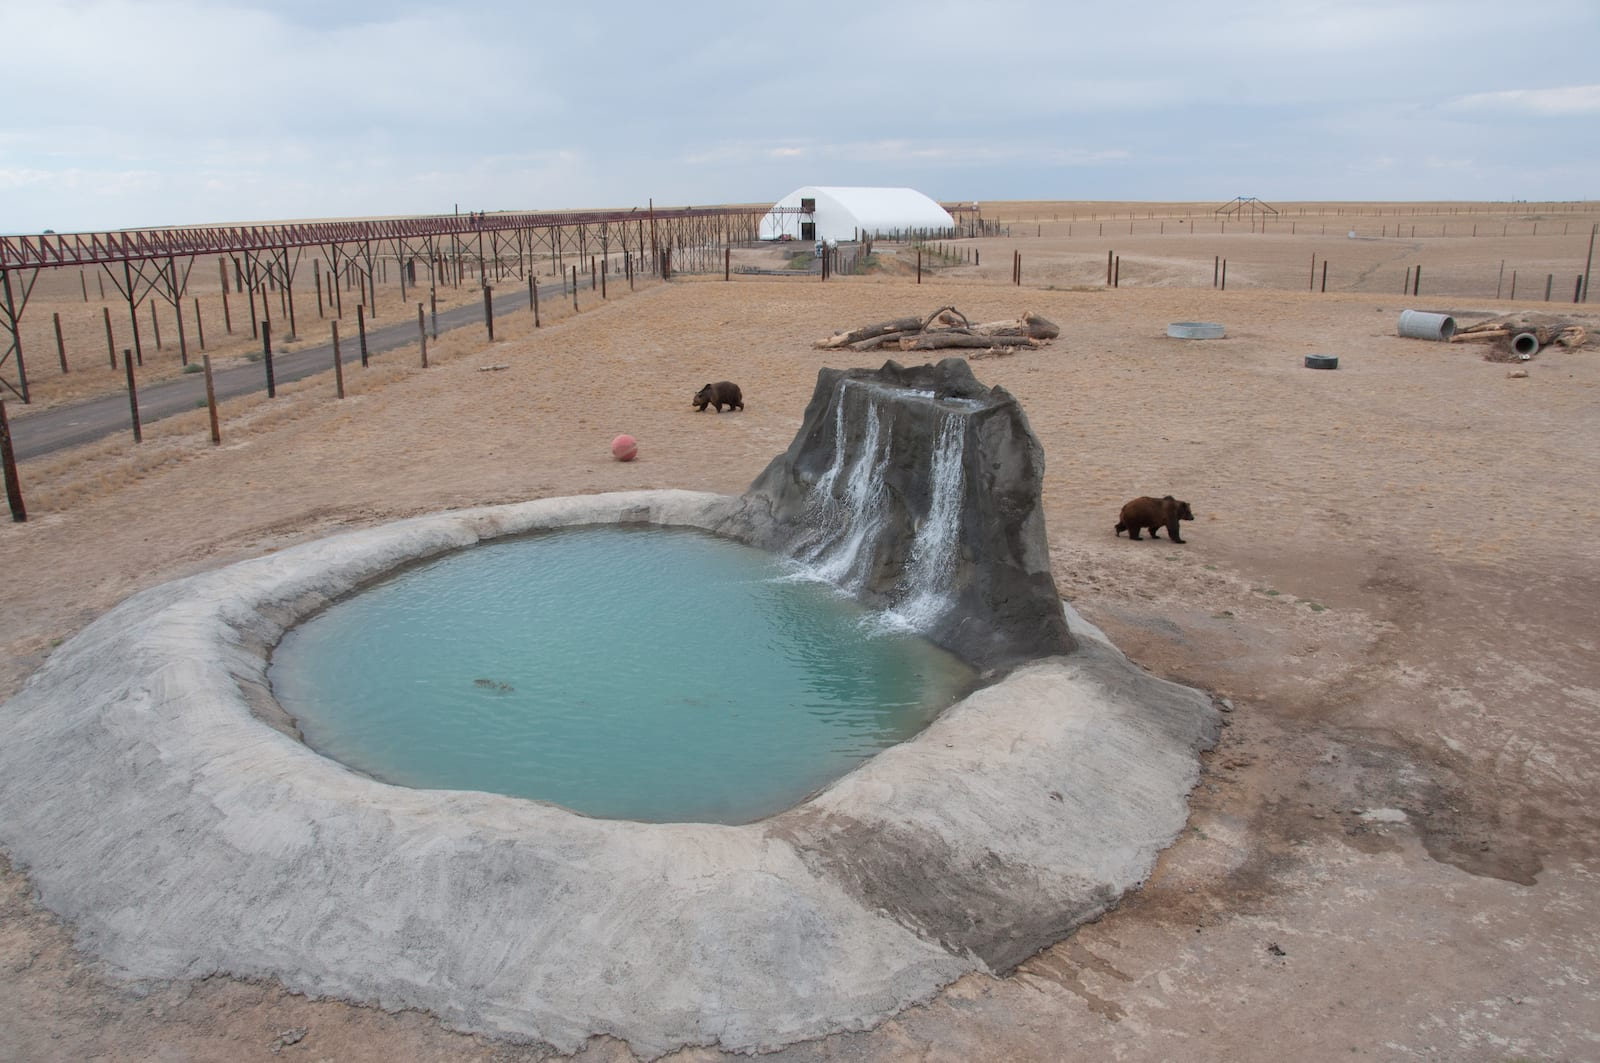 Grizzly Bear Habitat at Wild Animal Sanctuary Colorado